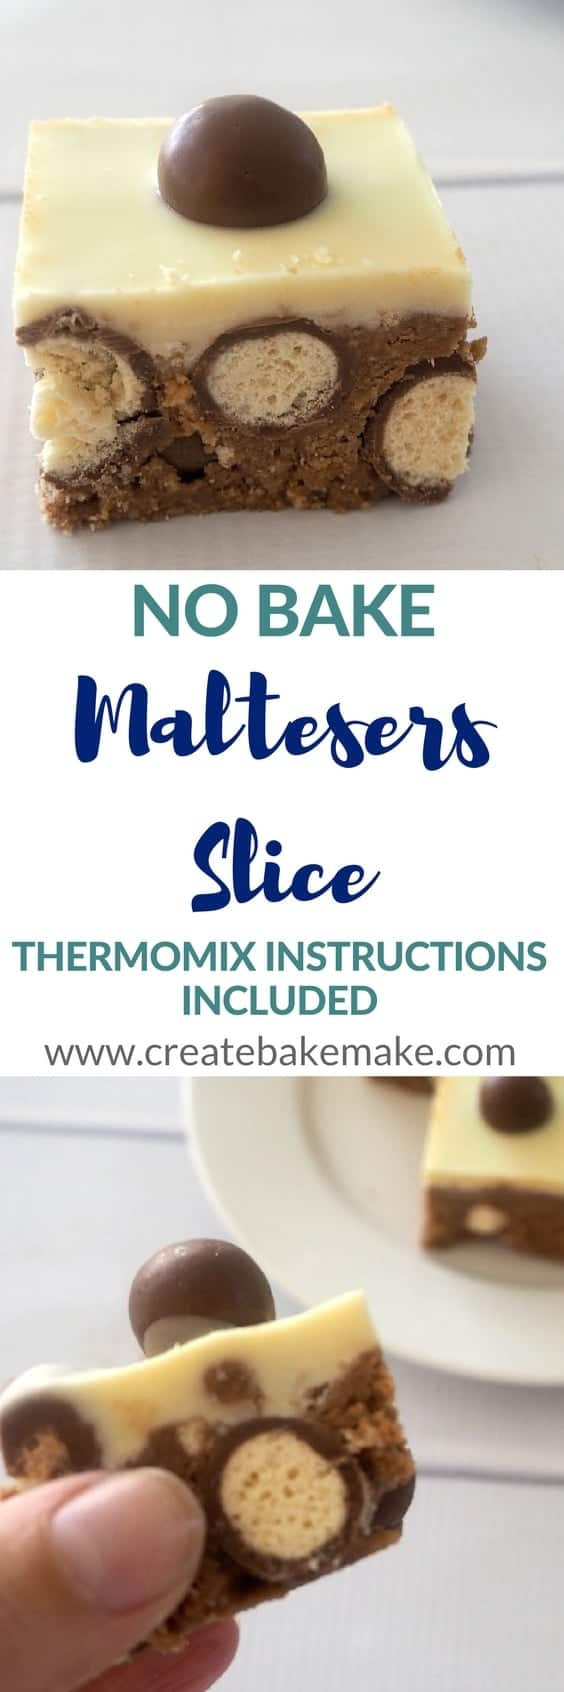 No Bake Maltesers Slice Recipe